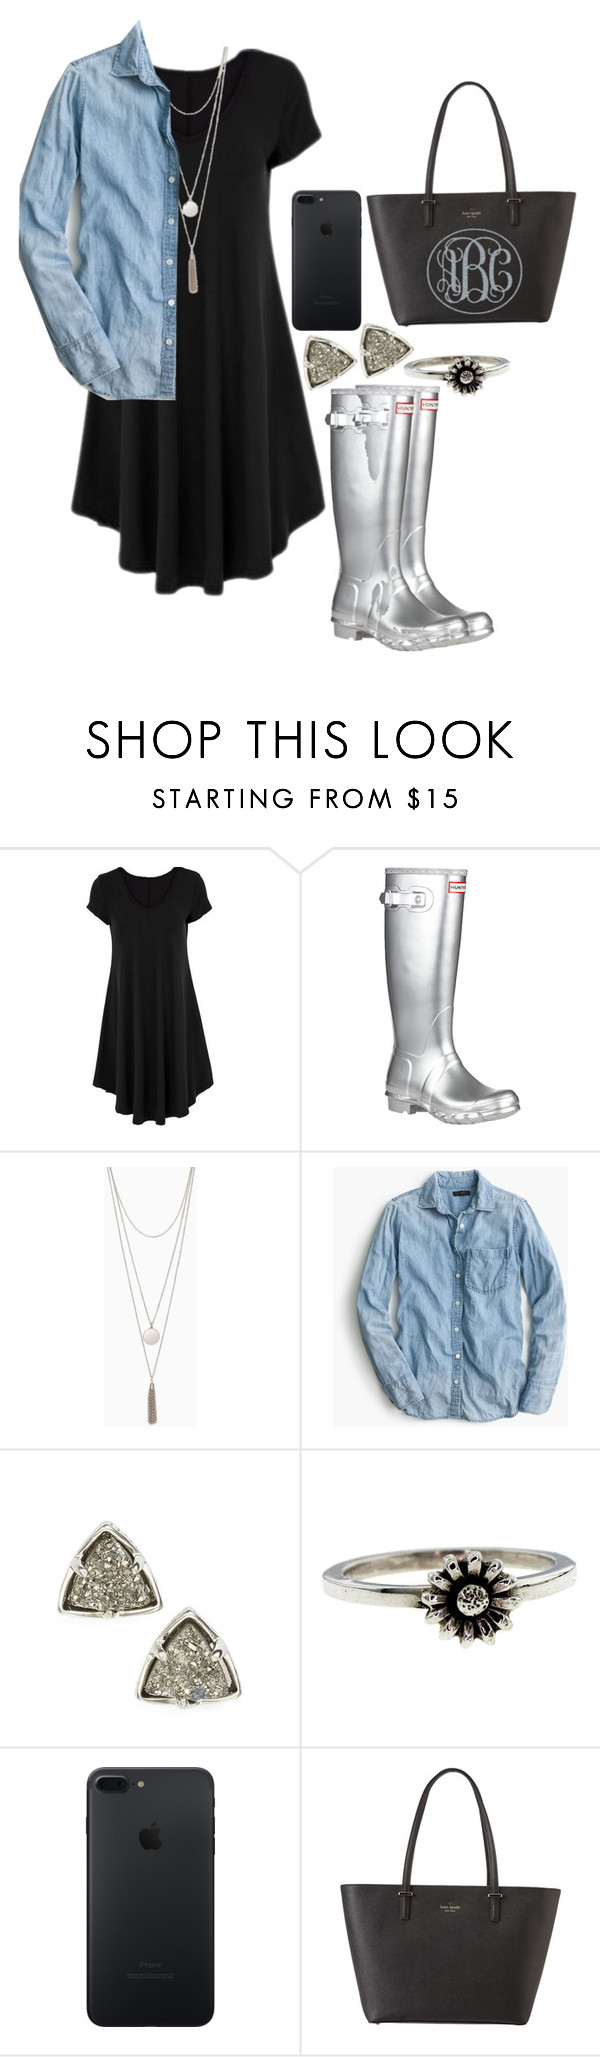 """""""be careful what you wish for"""" by legitimately-kierstin ❤ liked on Polyvore featuring Hunter, J.Crew, Kendra Scott, Metal Couture and Kate Spade"""